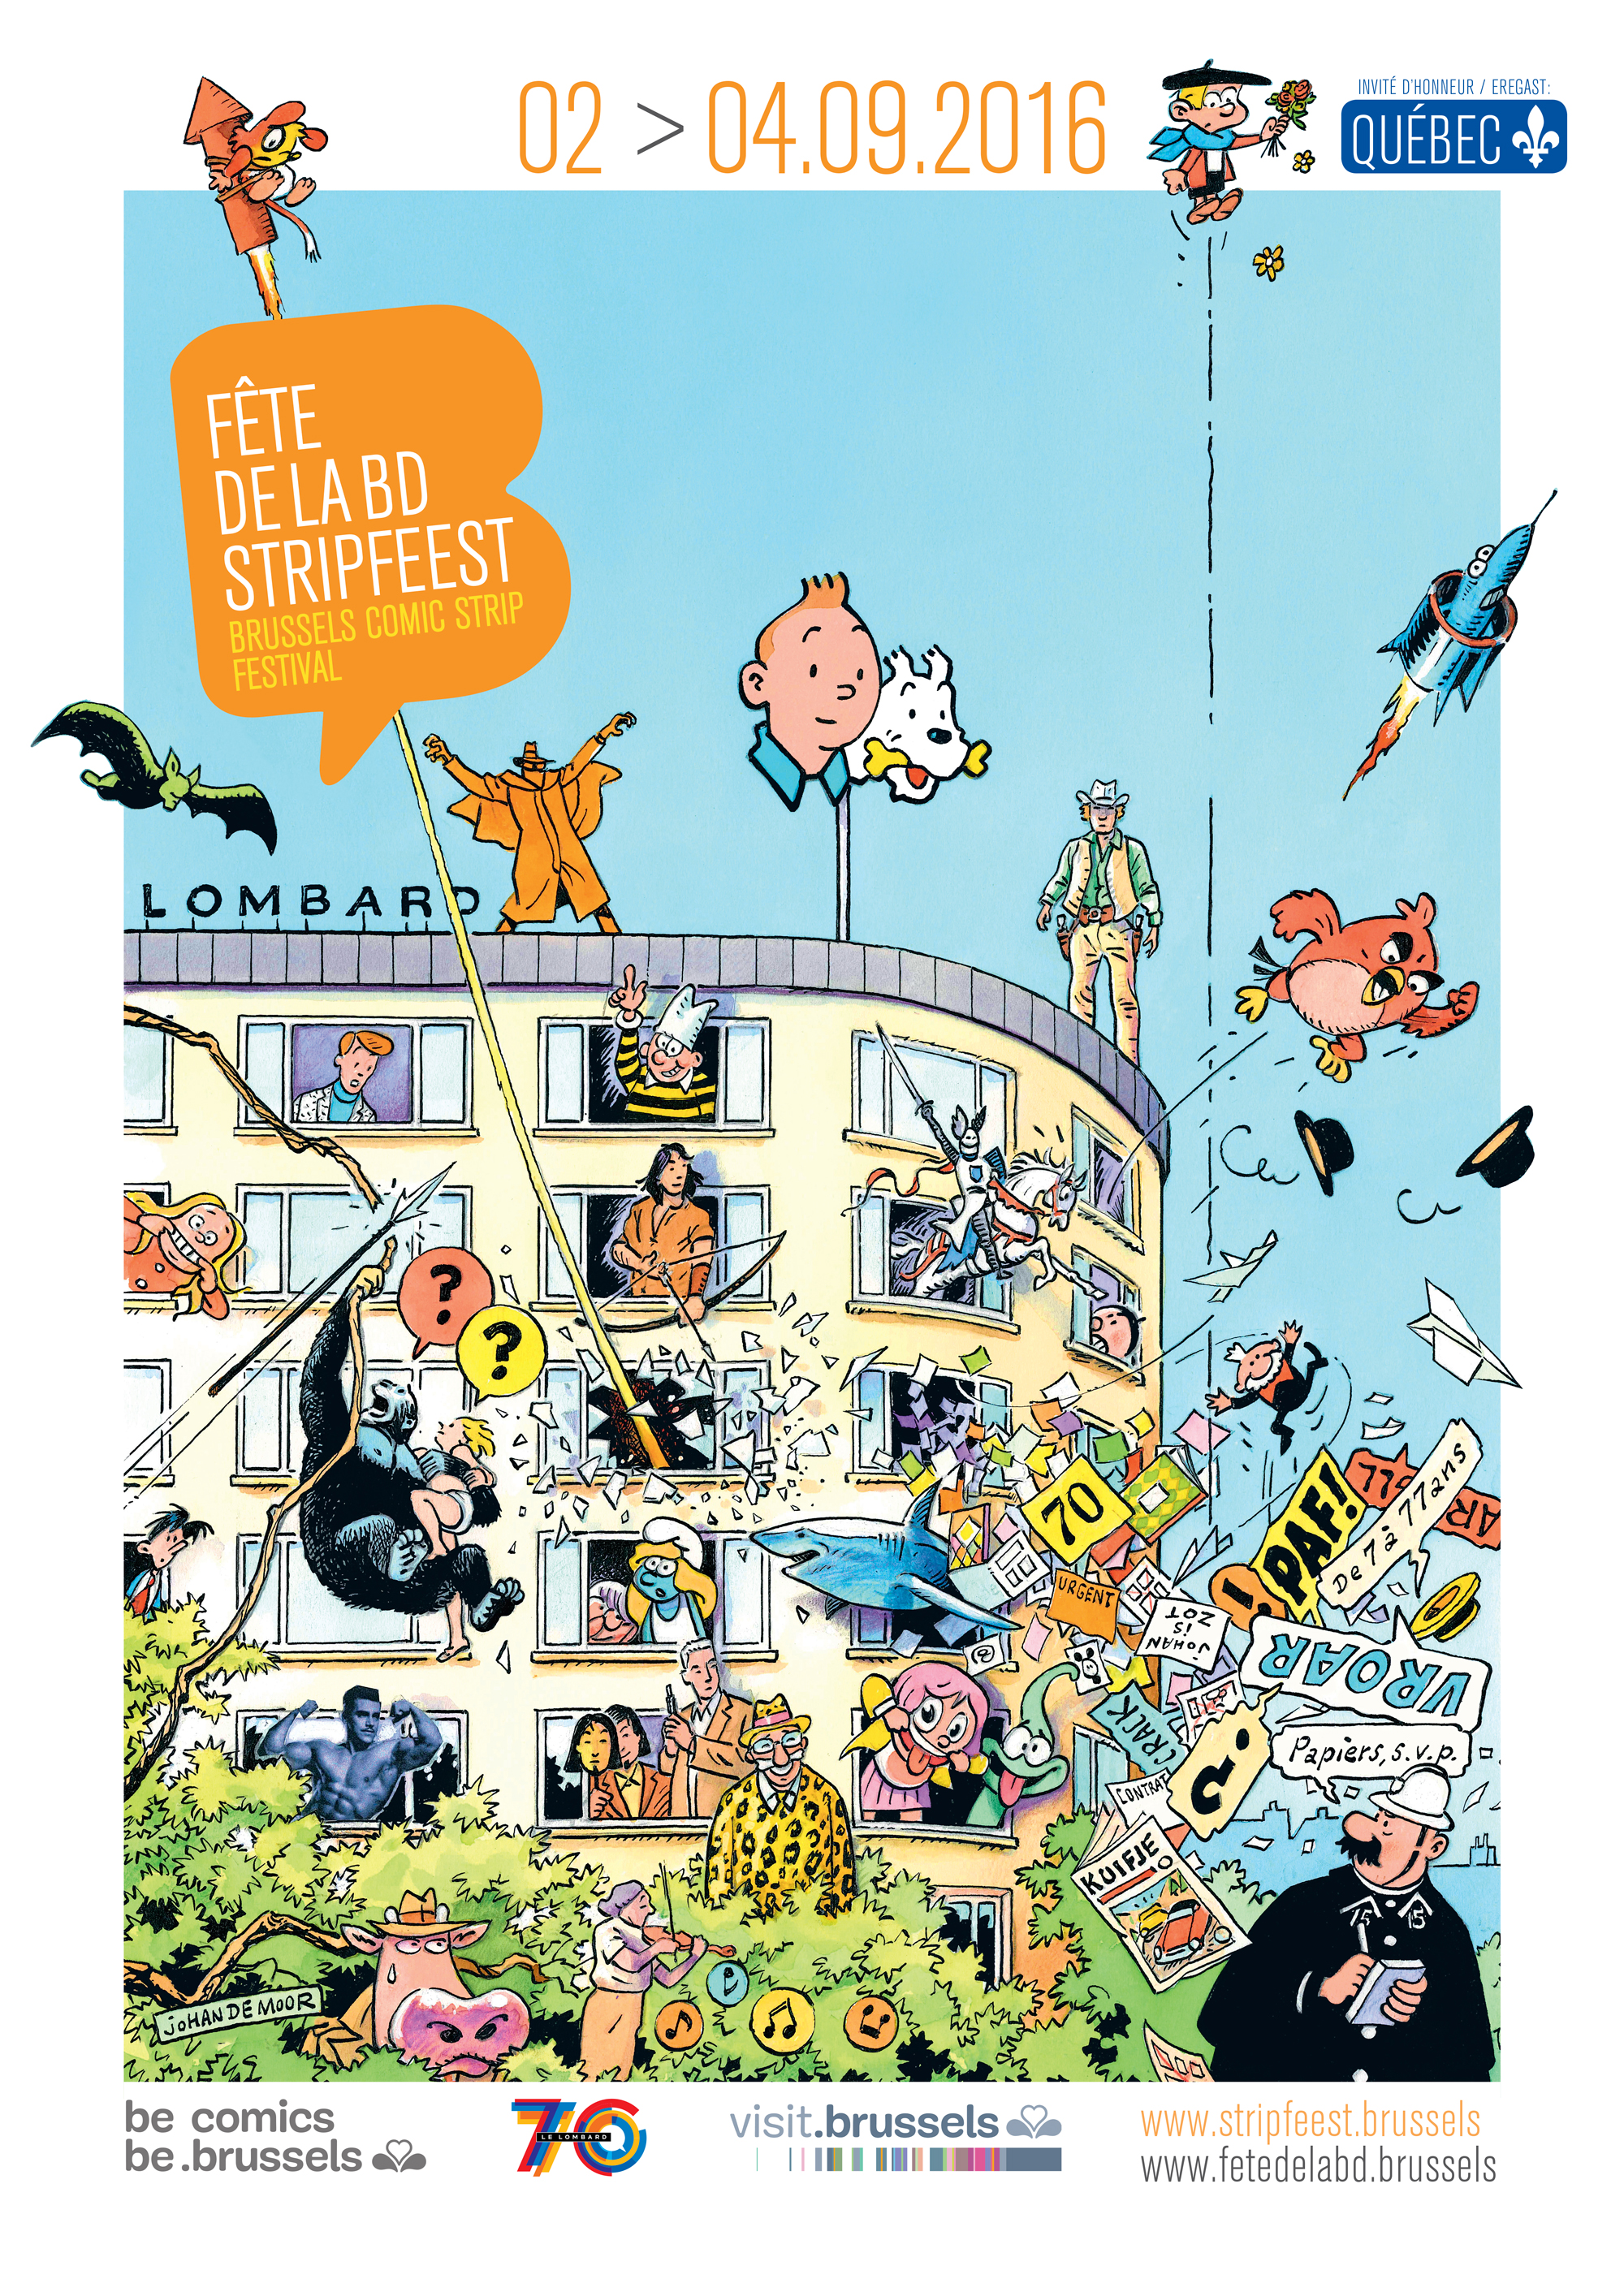 """From September 2 through September 4 you can visit the Brussels Comic Strip Festival in the Brussels park. The festival has been celebrating comics of all kinds in Brussels since 2010, and welcomes more than 100,000 visitors each year. Young or old, amateur or specialist, there is always something for everyone among the many activities on offer. For the 2016 edition, the Brussels park will be hosting comic museums, dozens of publishing houses, exhibitions, book shops, comic sellers, conferences, workshops and hundreds of authors signings. The Brussels Comic Strip Festival also includes a night-time show at Brussels Park, the Balloon's Day Parade, the Comic Strip Festival's Rally, comic strip exhibitions and activities throughout the city. We have been there for the past few years and it's always a delight meeting authors, publishers and friends. For Bob De Moor fans, there is a big chance you'll be able to complete your collection there as there are always shops present which also cater to the more 'conservative' comic strip fans. But, let's get back to Bob De Moor, or more precisely his son Johan De Moor who has completed the official artwork for the Festival's posters. On the poster we not only Tintin, the Smurfs, Ric Hochet, Thorgal, the Chevalier Ardent, etc., but also Balthazar. I'm sure you will recognise a lot other characters including a reference to Willy Vandersteen (""""De schat van Beersel""""). We all know that especially Balthazar is one of Johan's favourite characters, so that doesn't come as a surprise. Quite a nice poster this one is!"""